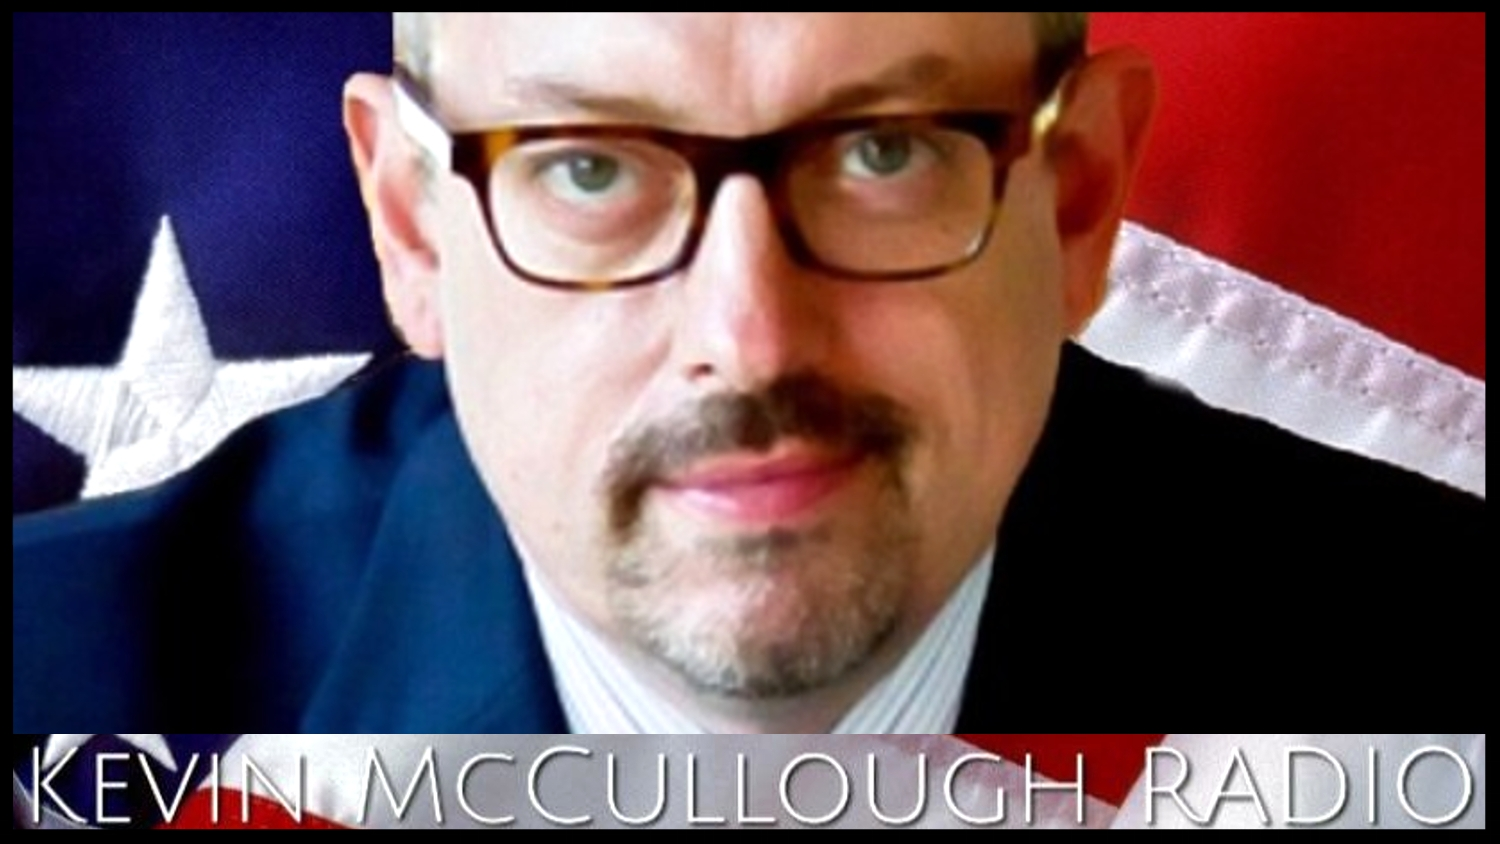 Kevin McCullough Radio    | Listen from 15:50  |    February 16th 2018